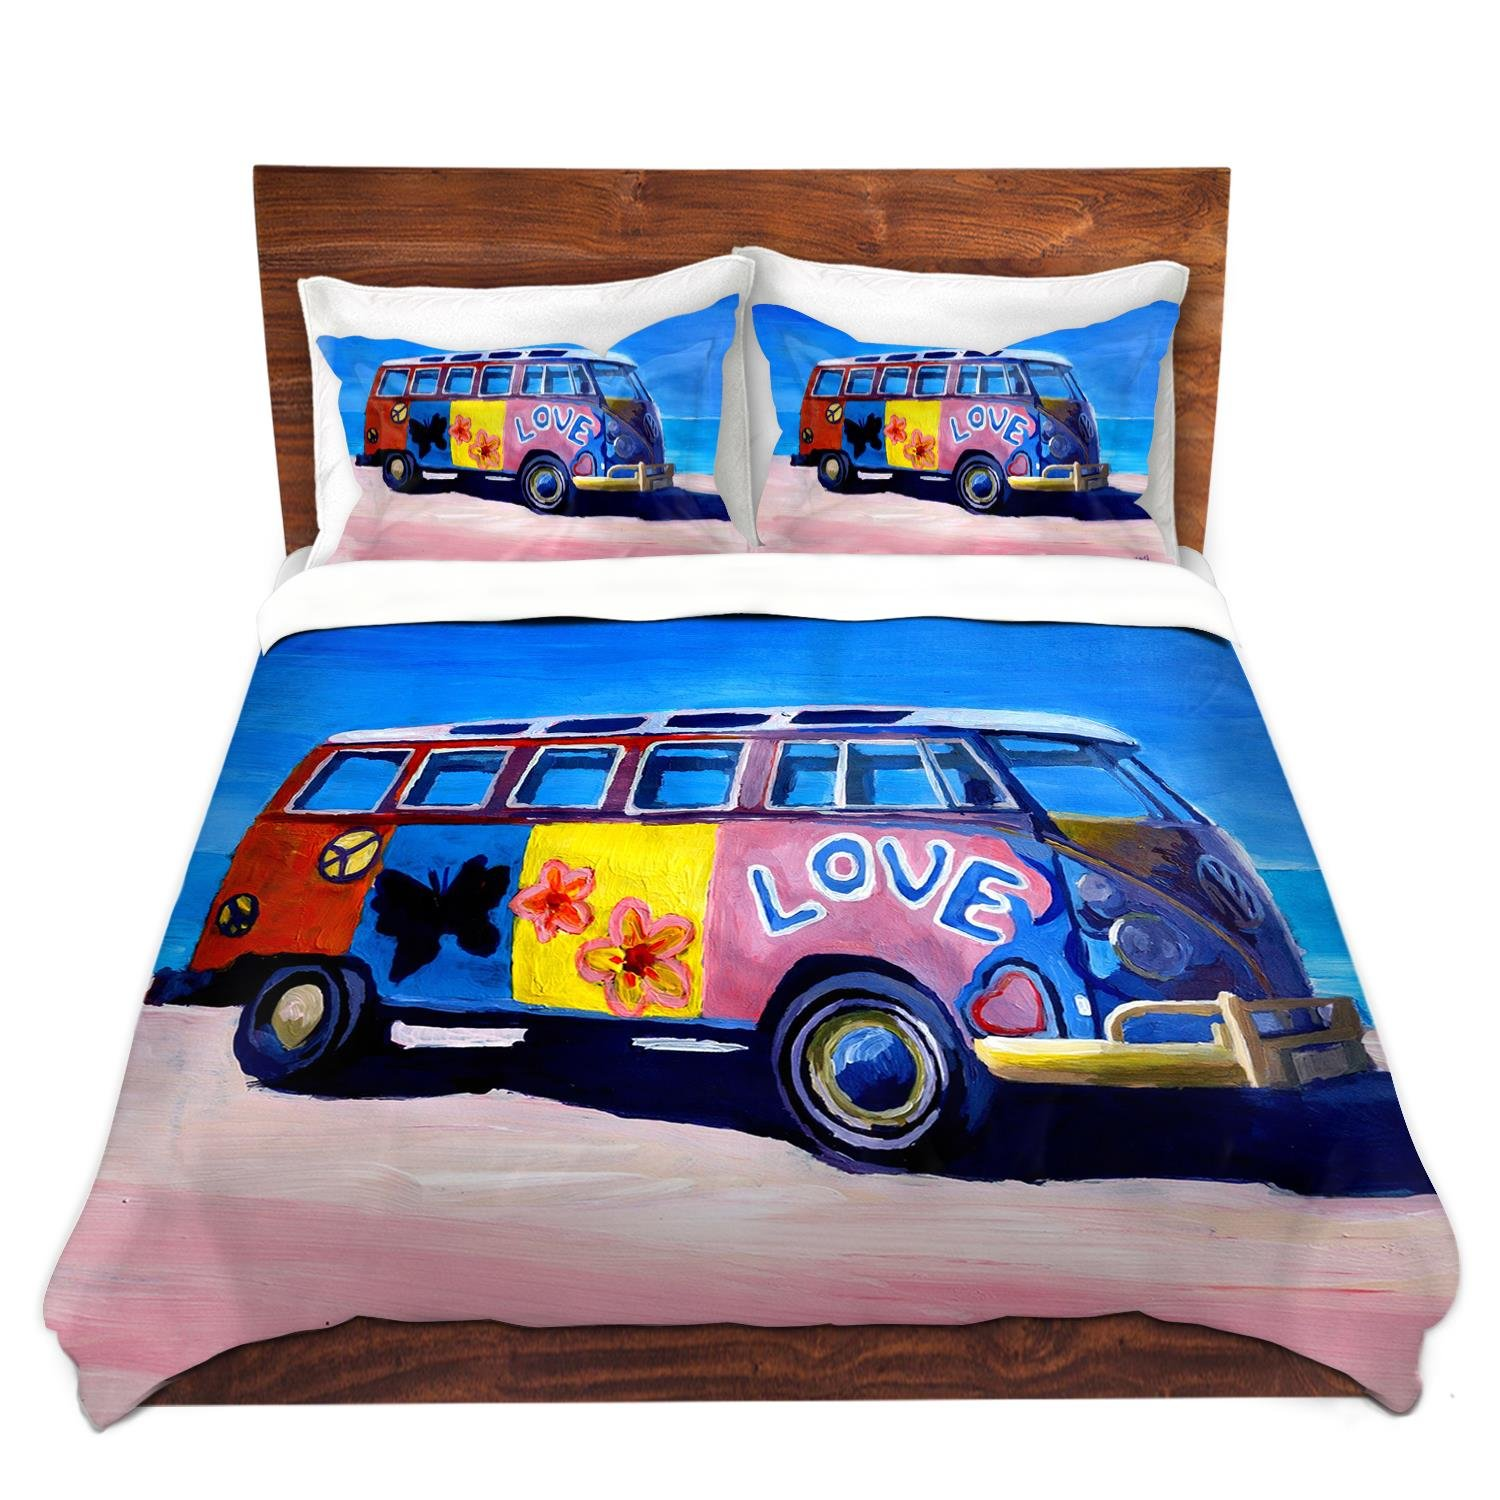 DiaNoche Designs the Love VW Bus Unique Bedding Ideas Cover Brushed Twill Twin, Queen, 8 King Duvet Sham Set